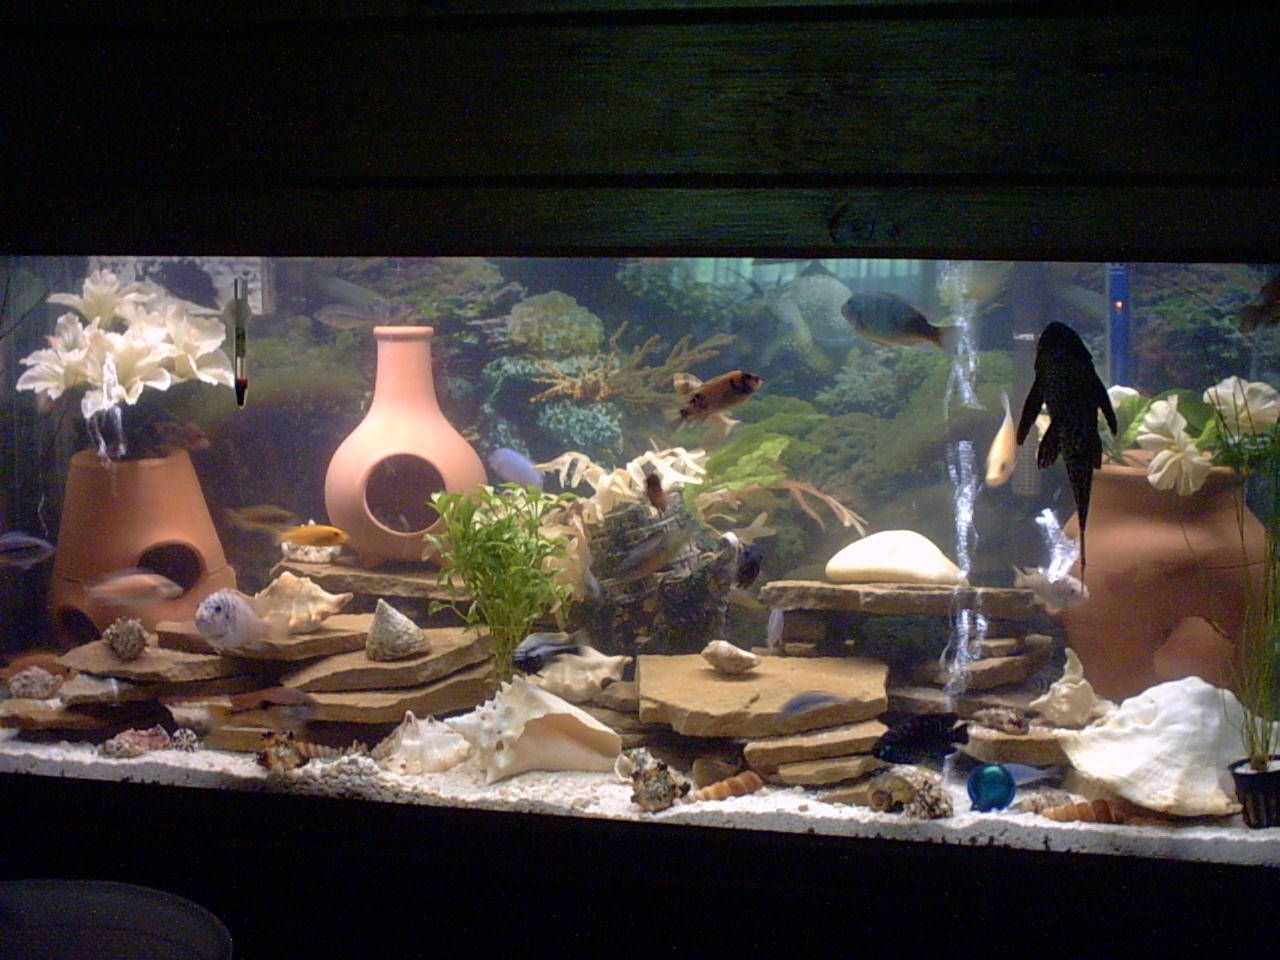 Freshwater aquarium fish tank pictures - 2009 Photo Ace Contest Freshwater Aquarium Fishfish Aquariumscichlid